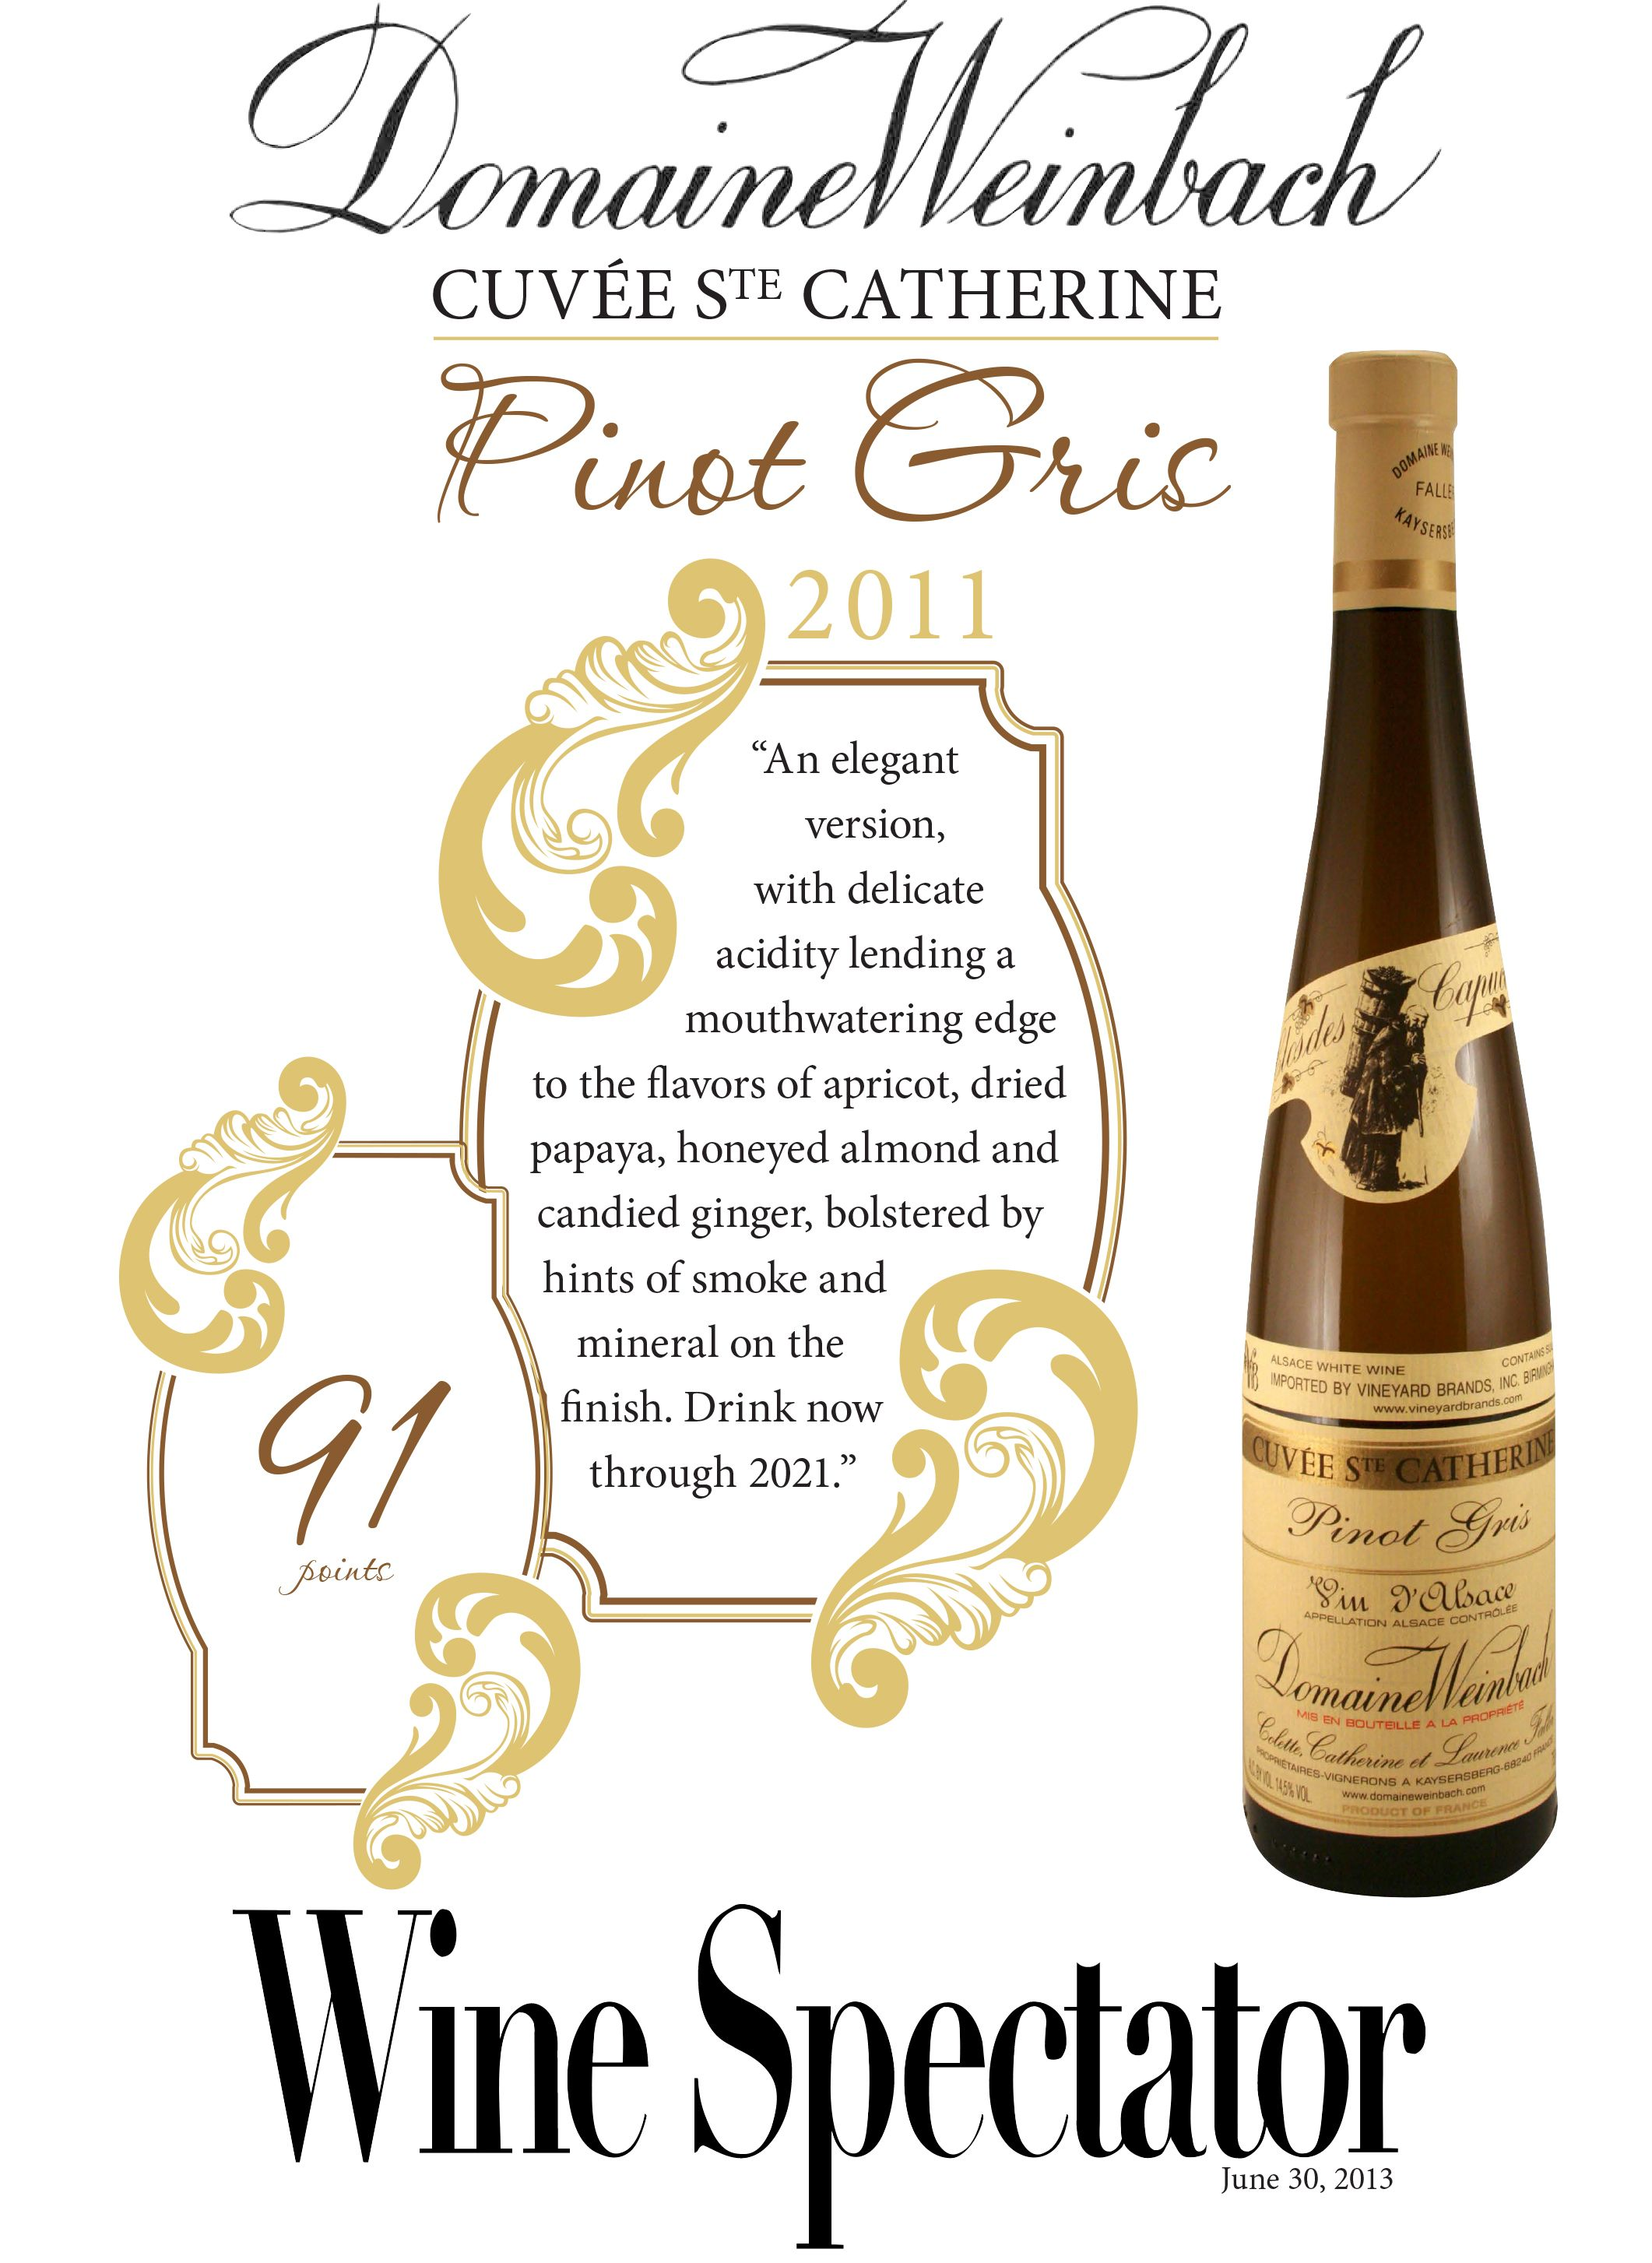 Domaine Weinbach Cuvée Ste Catherine Pinot Gris 2011 - 91 points - Wine Spectator